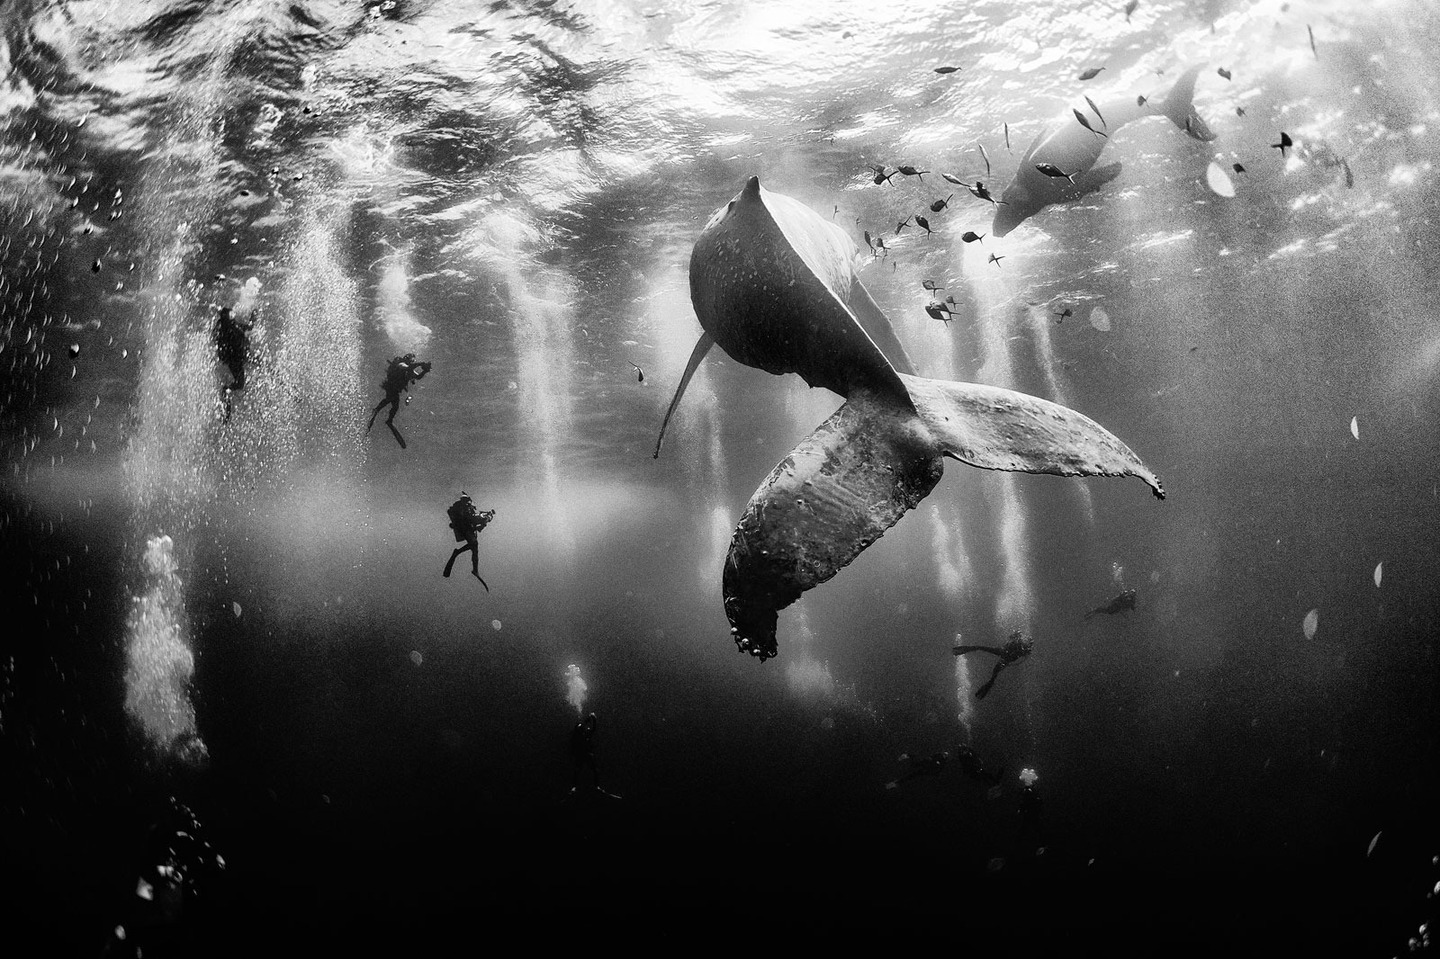 Grand-Prize-Anuar-Patjane-National-Geographic-Traveler-Photo-Contest-2015Floriuk